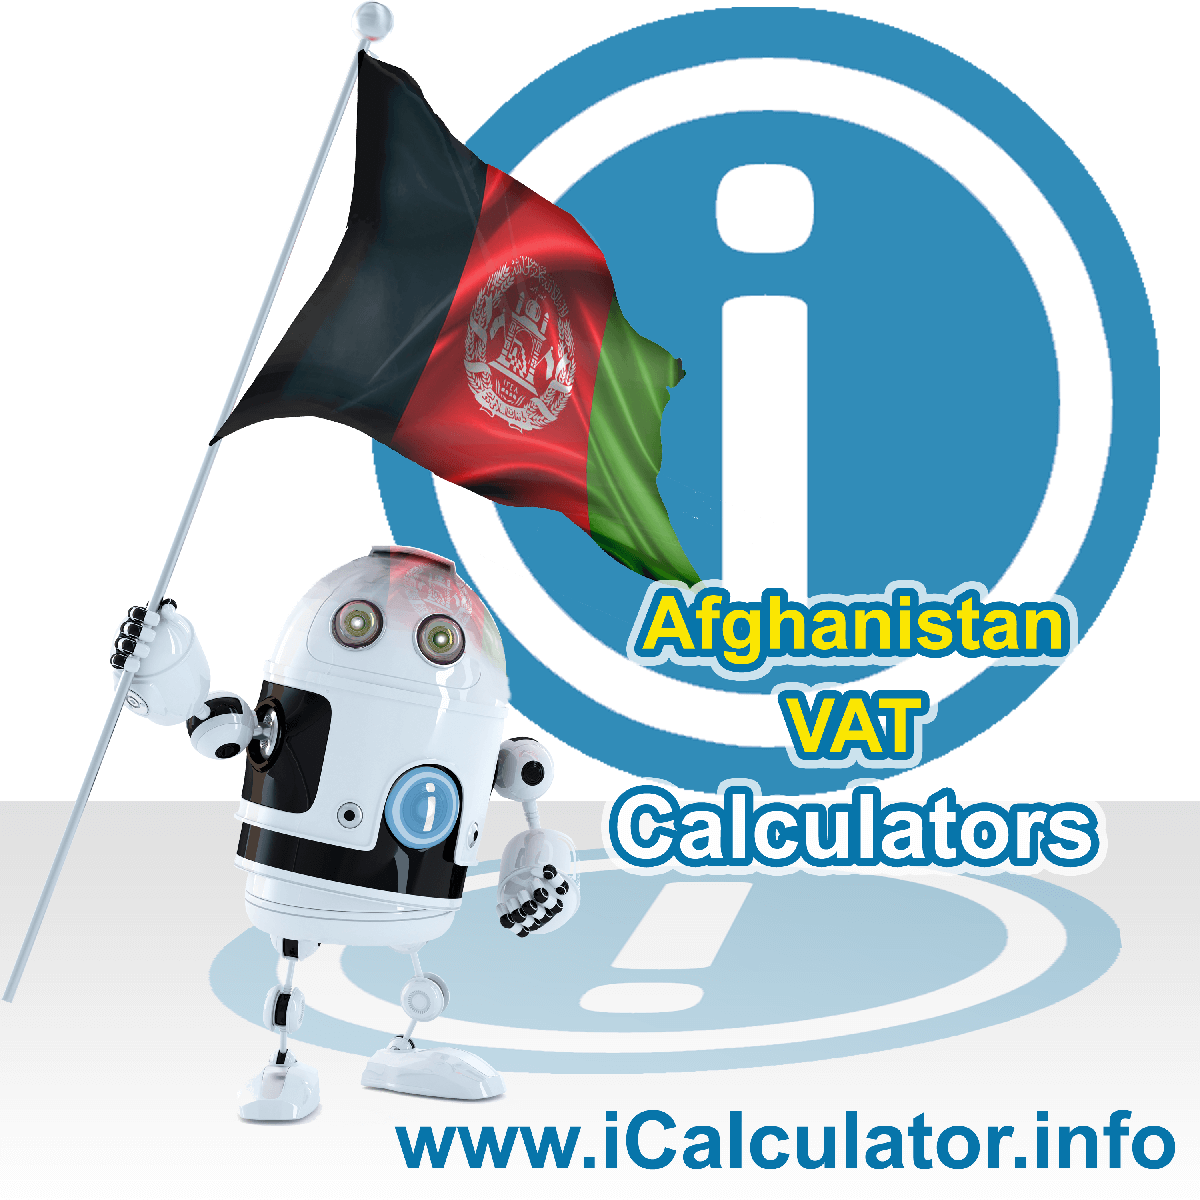 Afghanistan VAT Calculator. This image shows the Afghanistan flag and information relating to the VAT formula used for calculating Value Added Tax in Afghanistan using the Afghanistan VAT Calculator in 2021